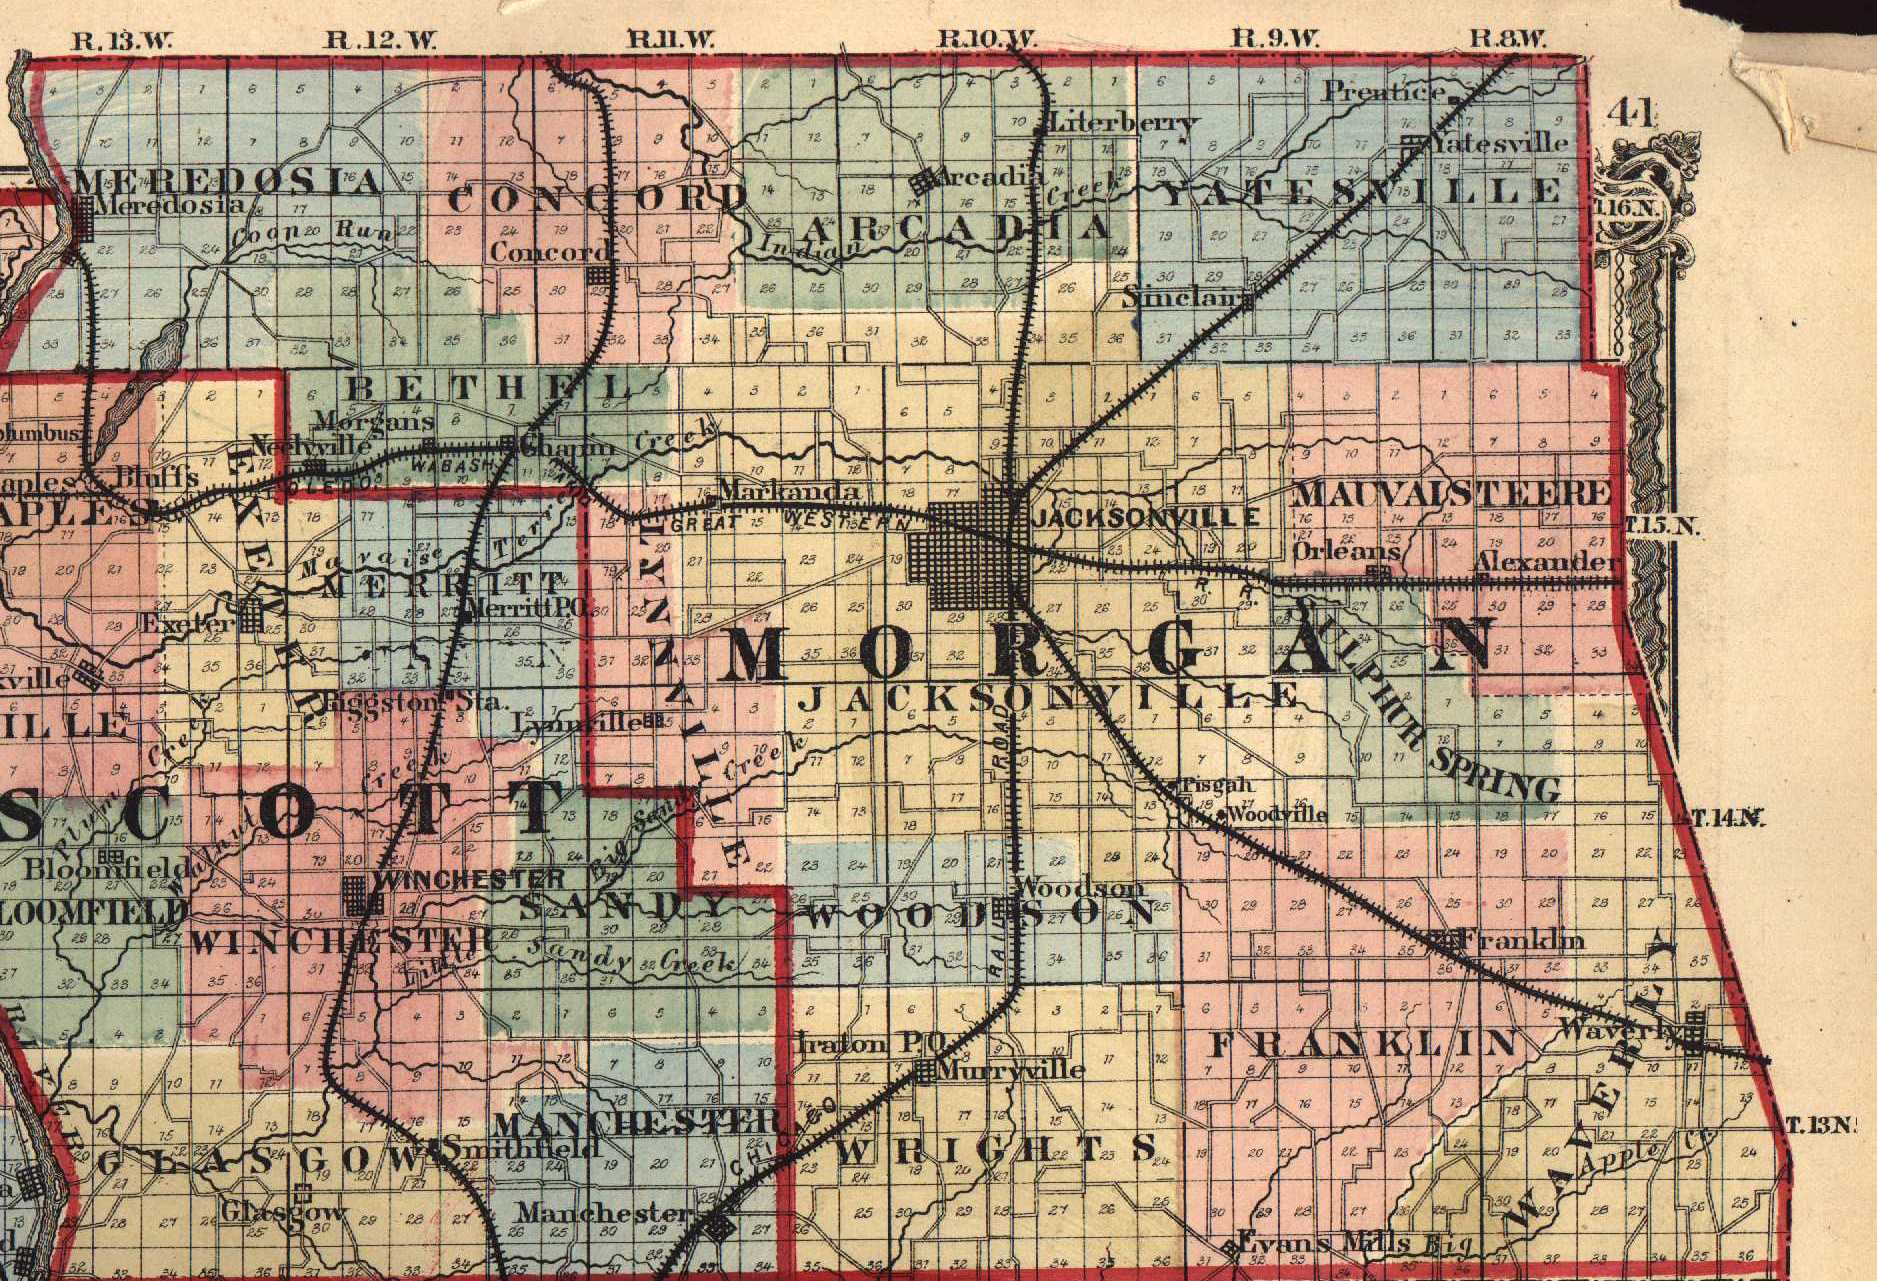 Morgan County Indiana Township Map Images Frompo 1